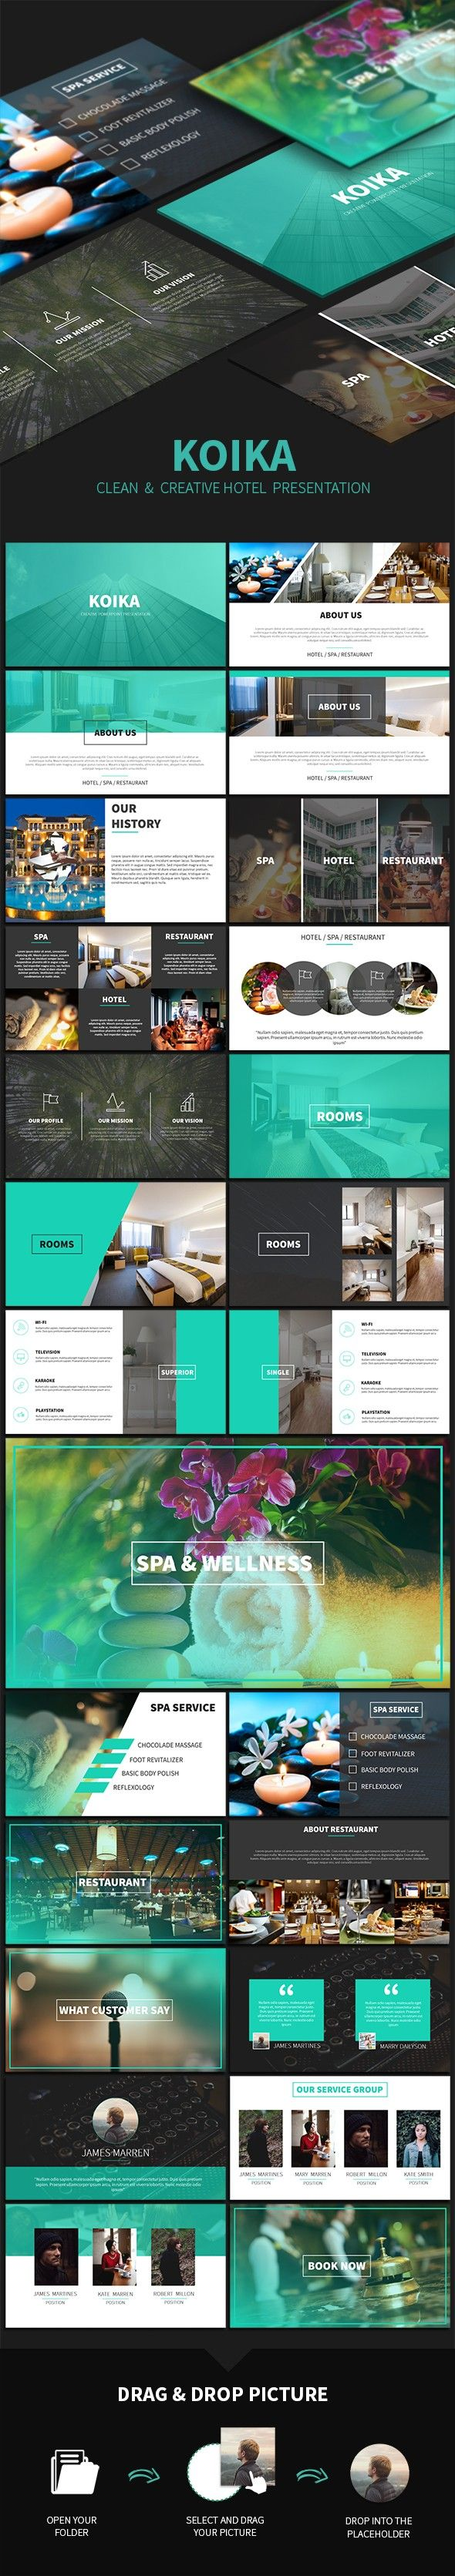 Koika Powerpoint Presentation Template Powerpoint Presentation - Best of hotel presentation template ideas